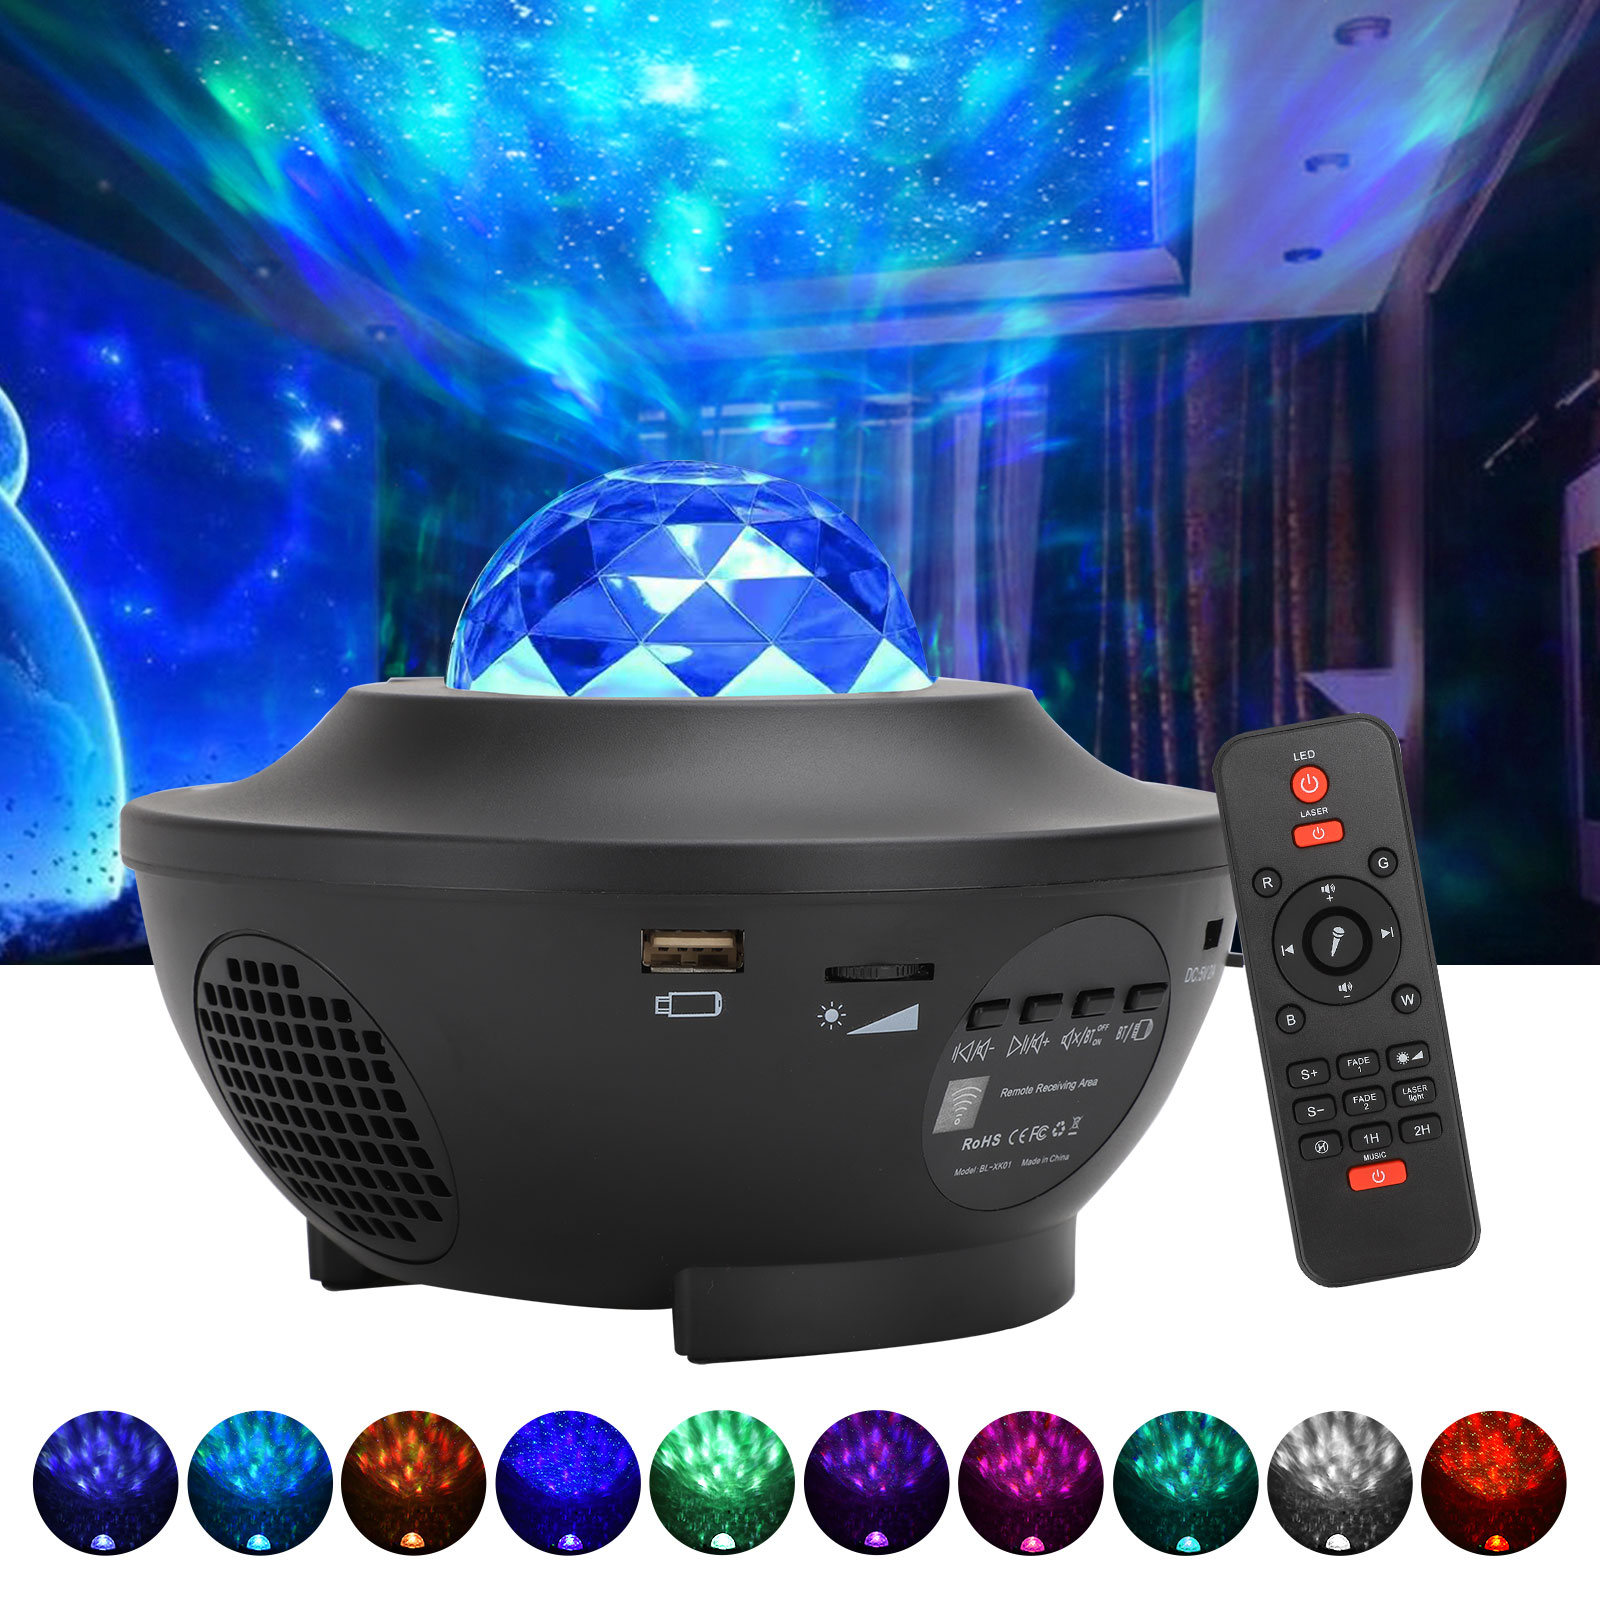 Galaxy Light Projector with Remote Control and Bluetooth Music Speaker Rotating Ocean Wave Star Light Projector Bedroom Christmas Wedding Tesoky Star Projector Night Light for Kids